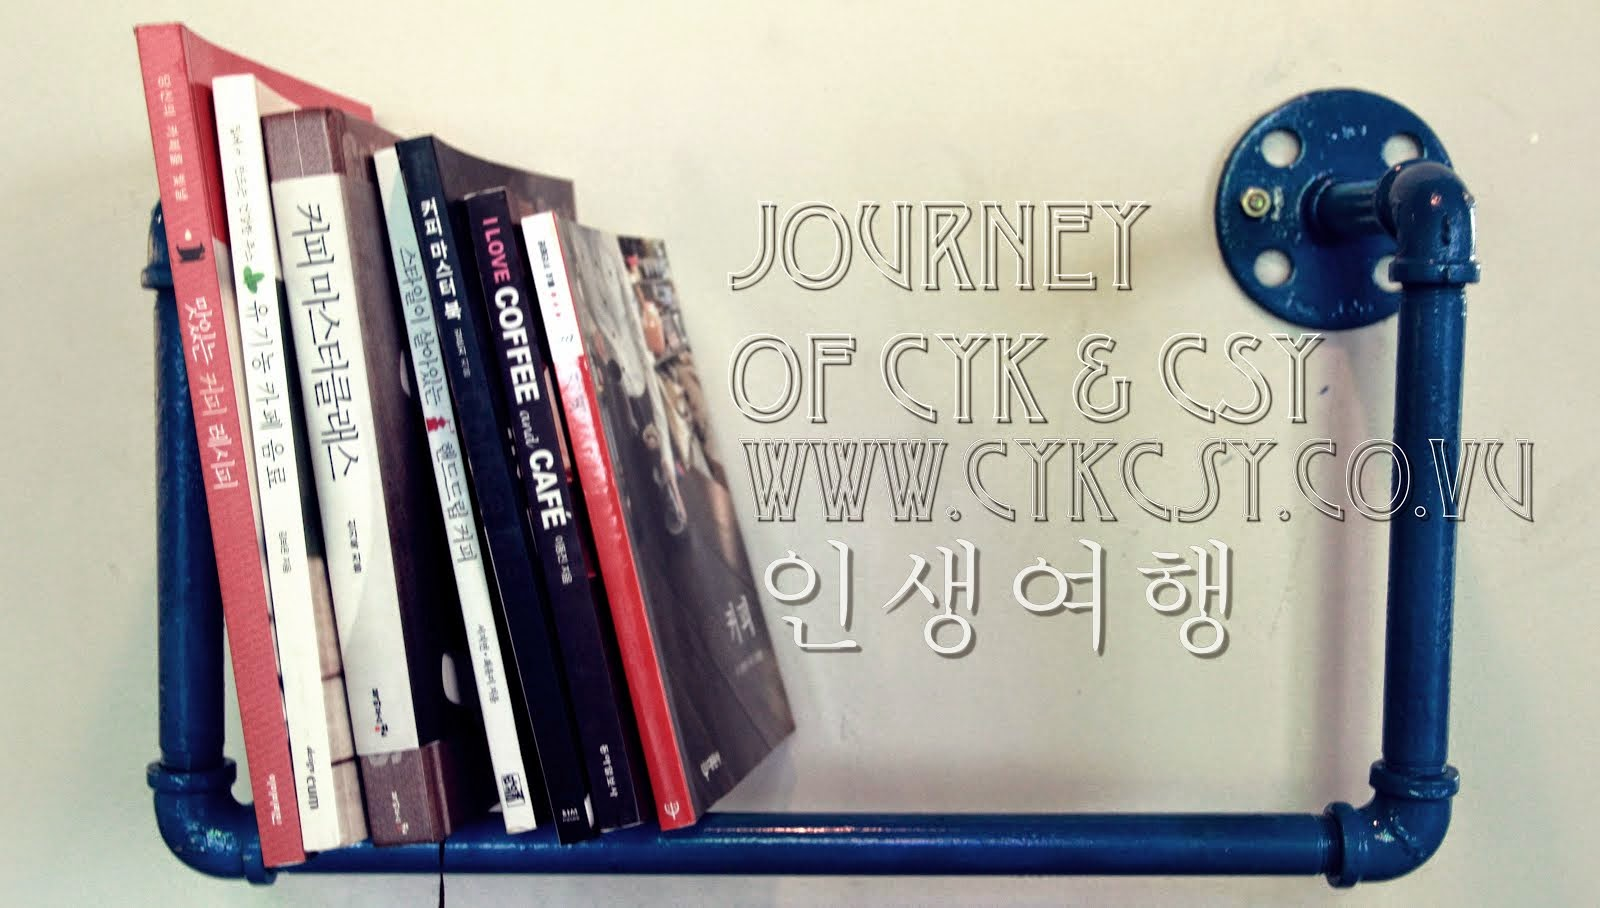 Journey of CYK&CSY 인생여행: formerly known as xcb91.blogspot.com